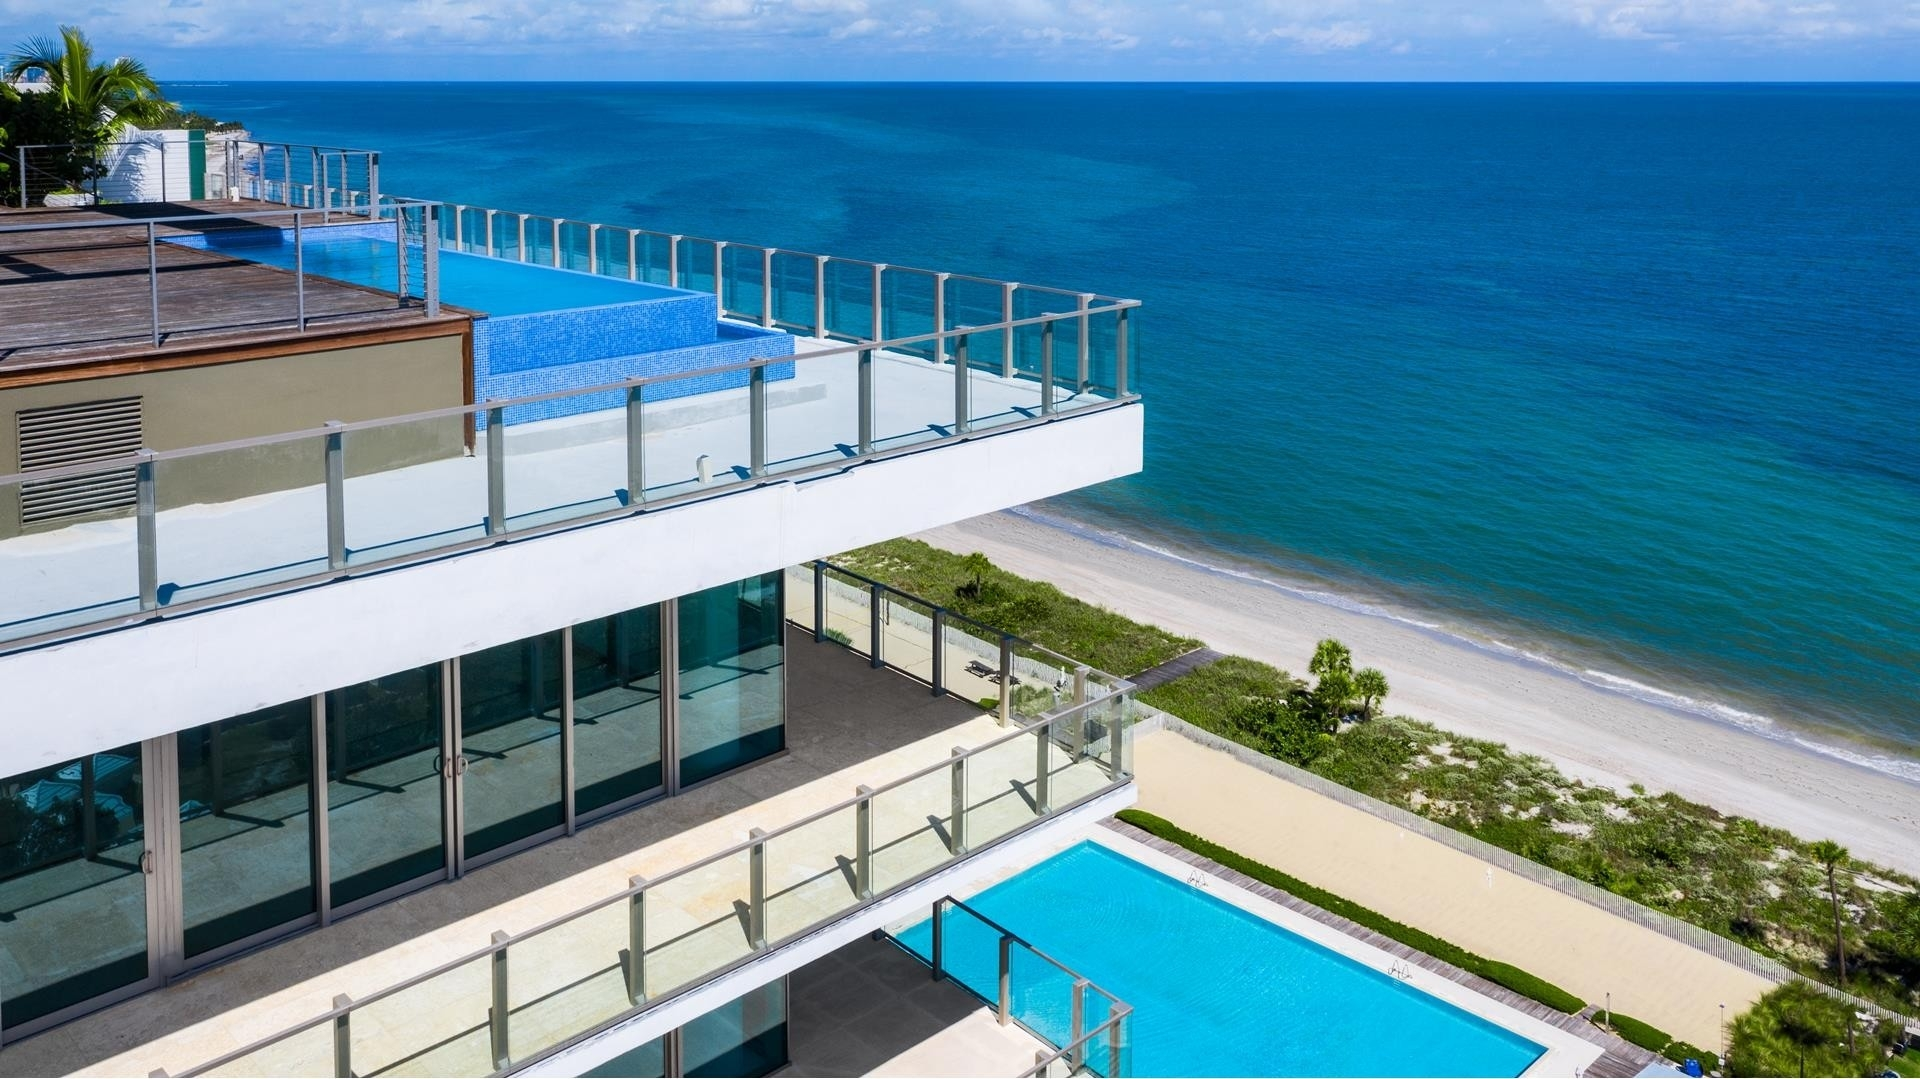 Condominium for Sale at 360 Ocean Dr , PH1S Village of Key Biscayne, Key Biscayne, FL 33149